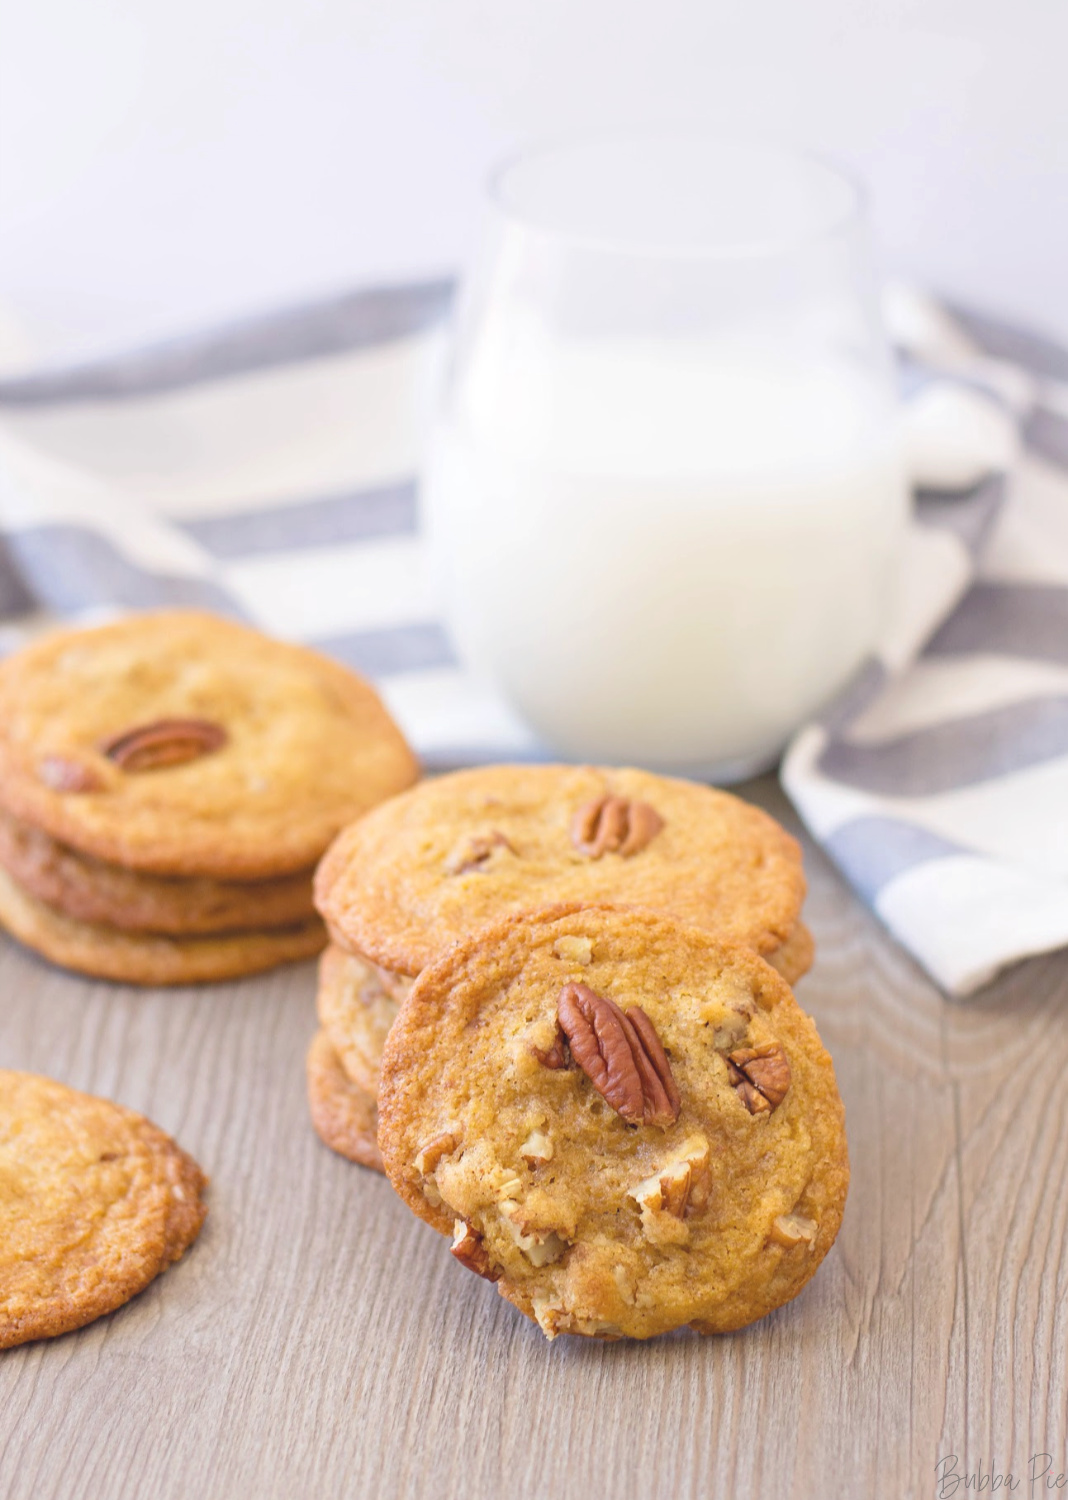 Butter Pecan Cookies served with a glass of milk.